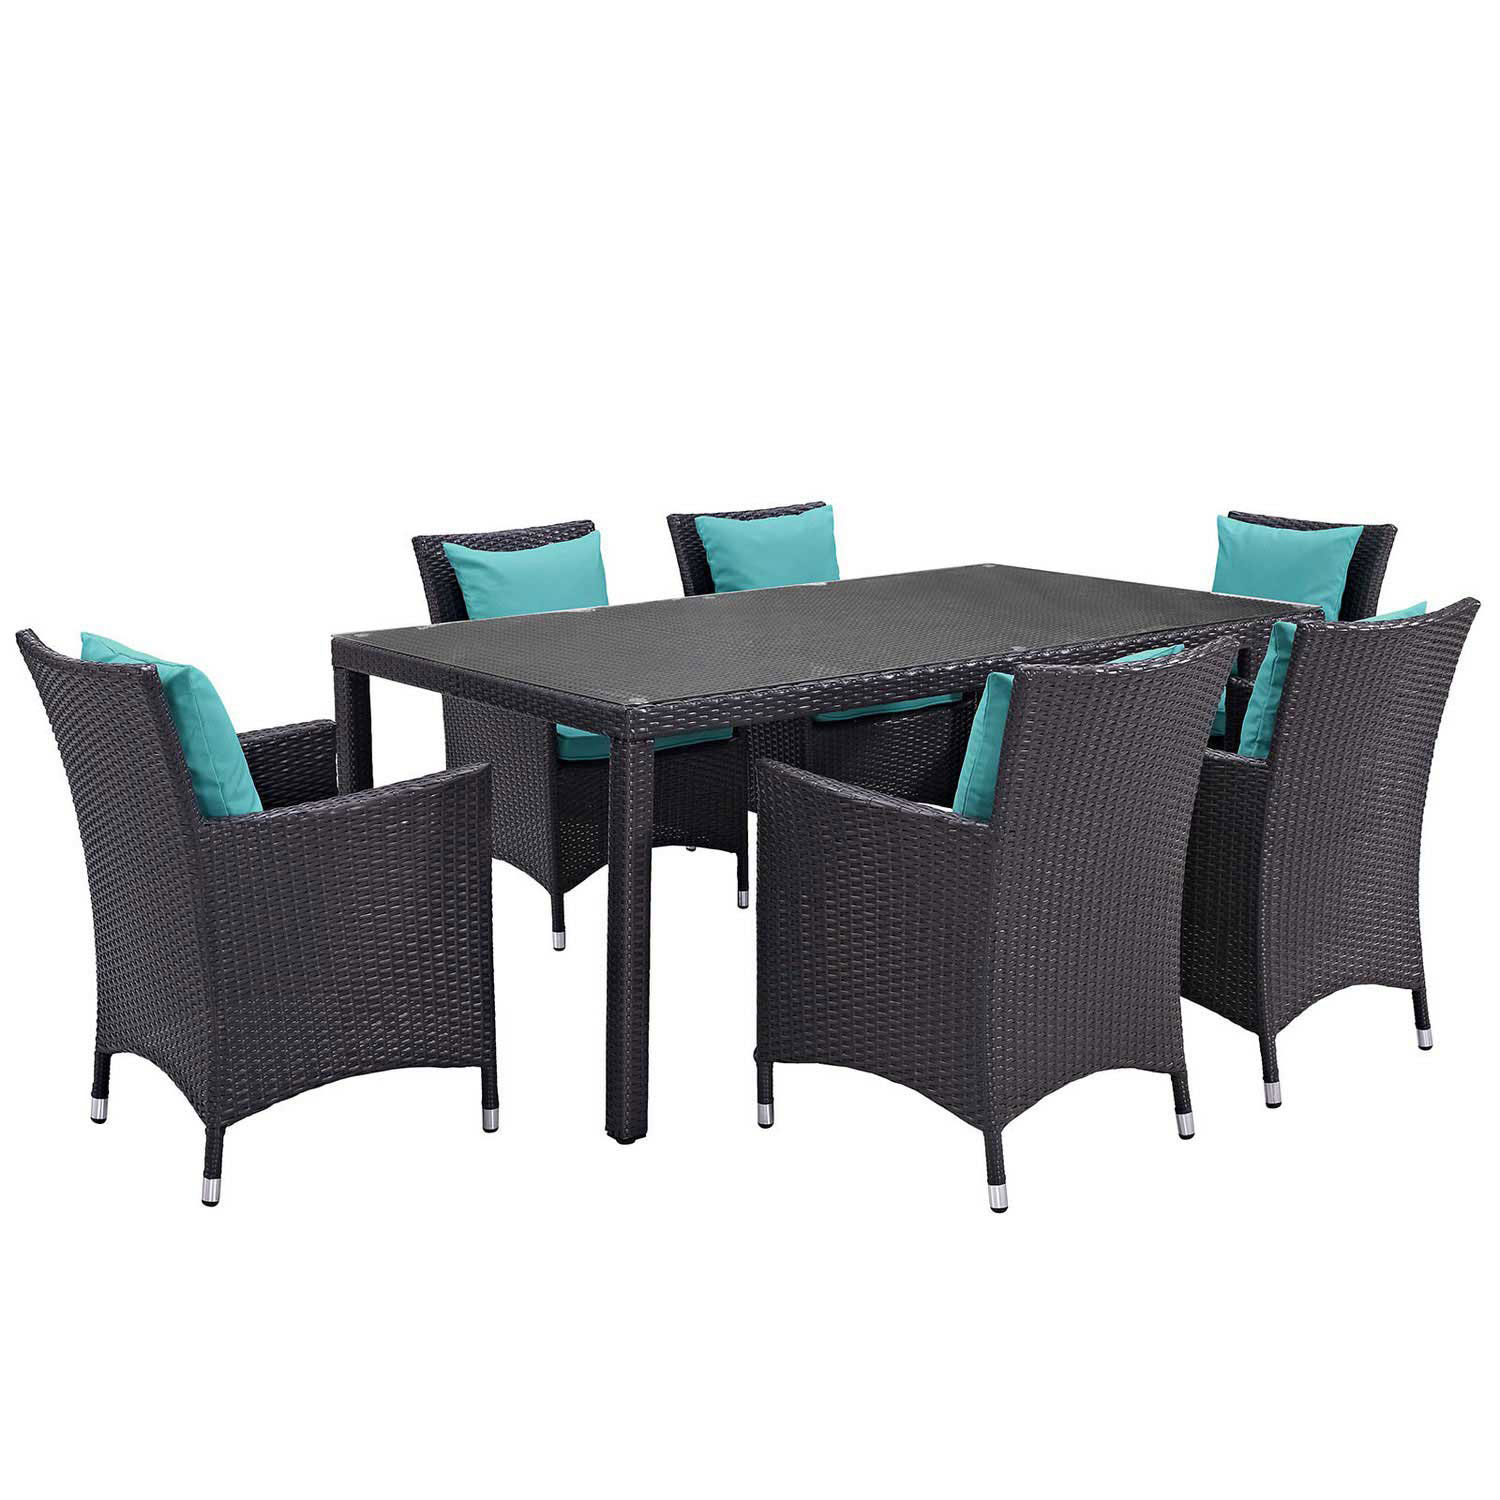 Modway Convene 7 Piece Outdoor Patio Dining Set - Espresso Turquoise